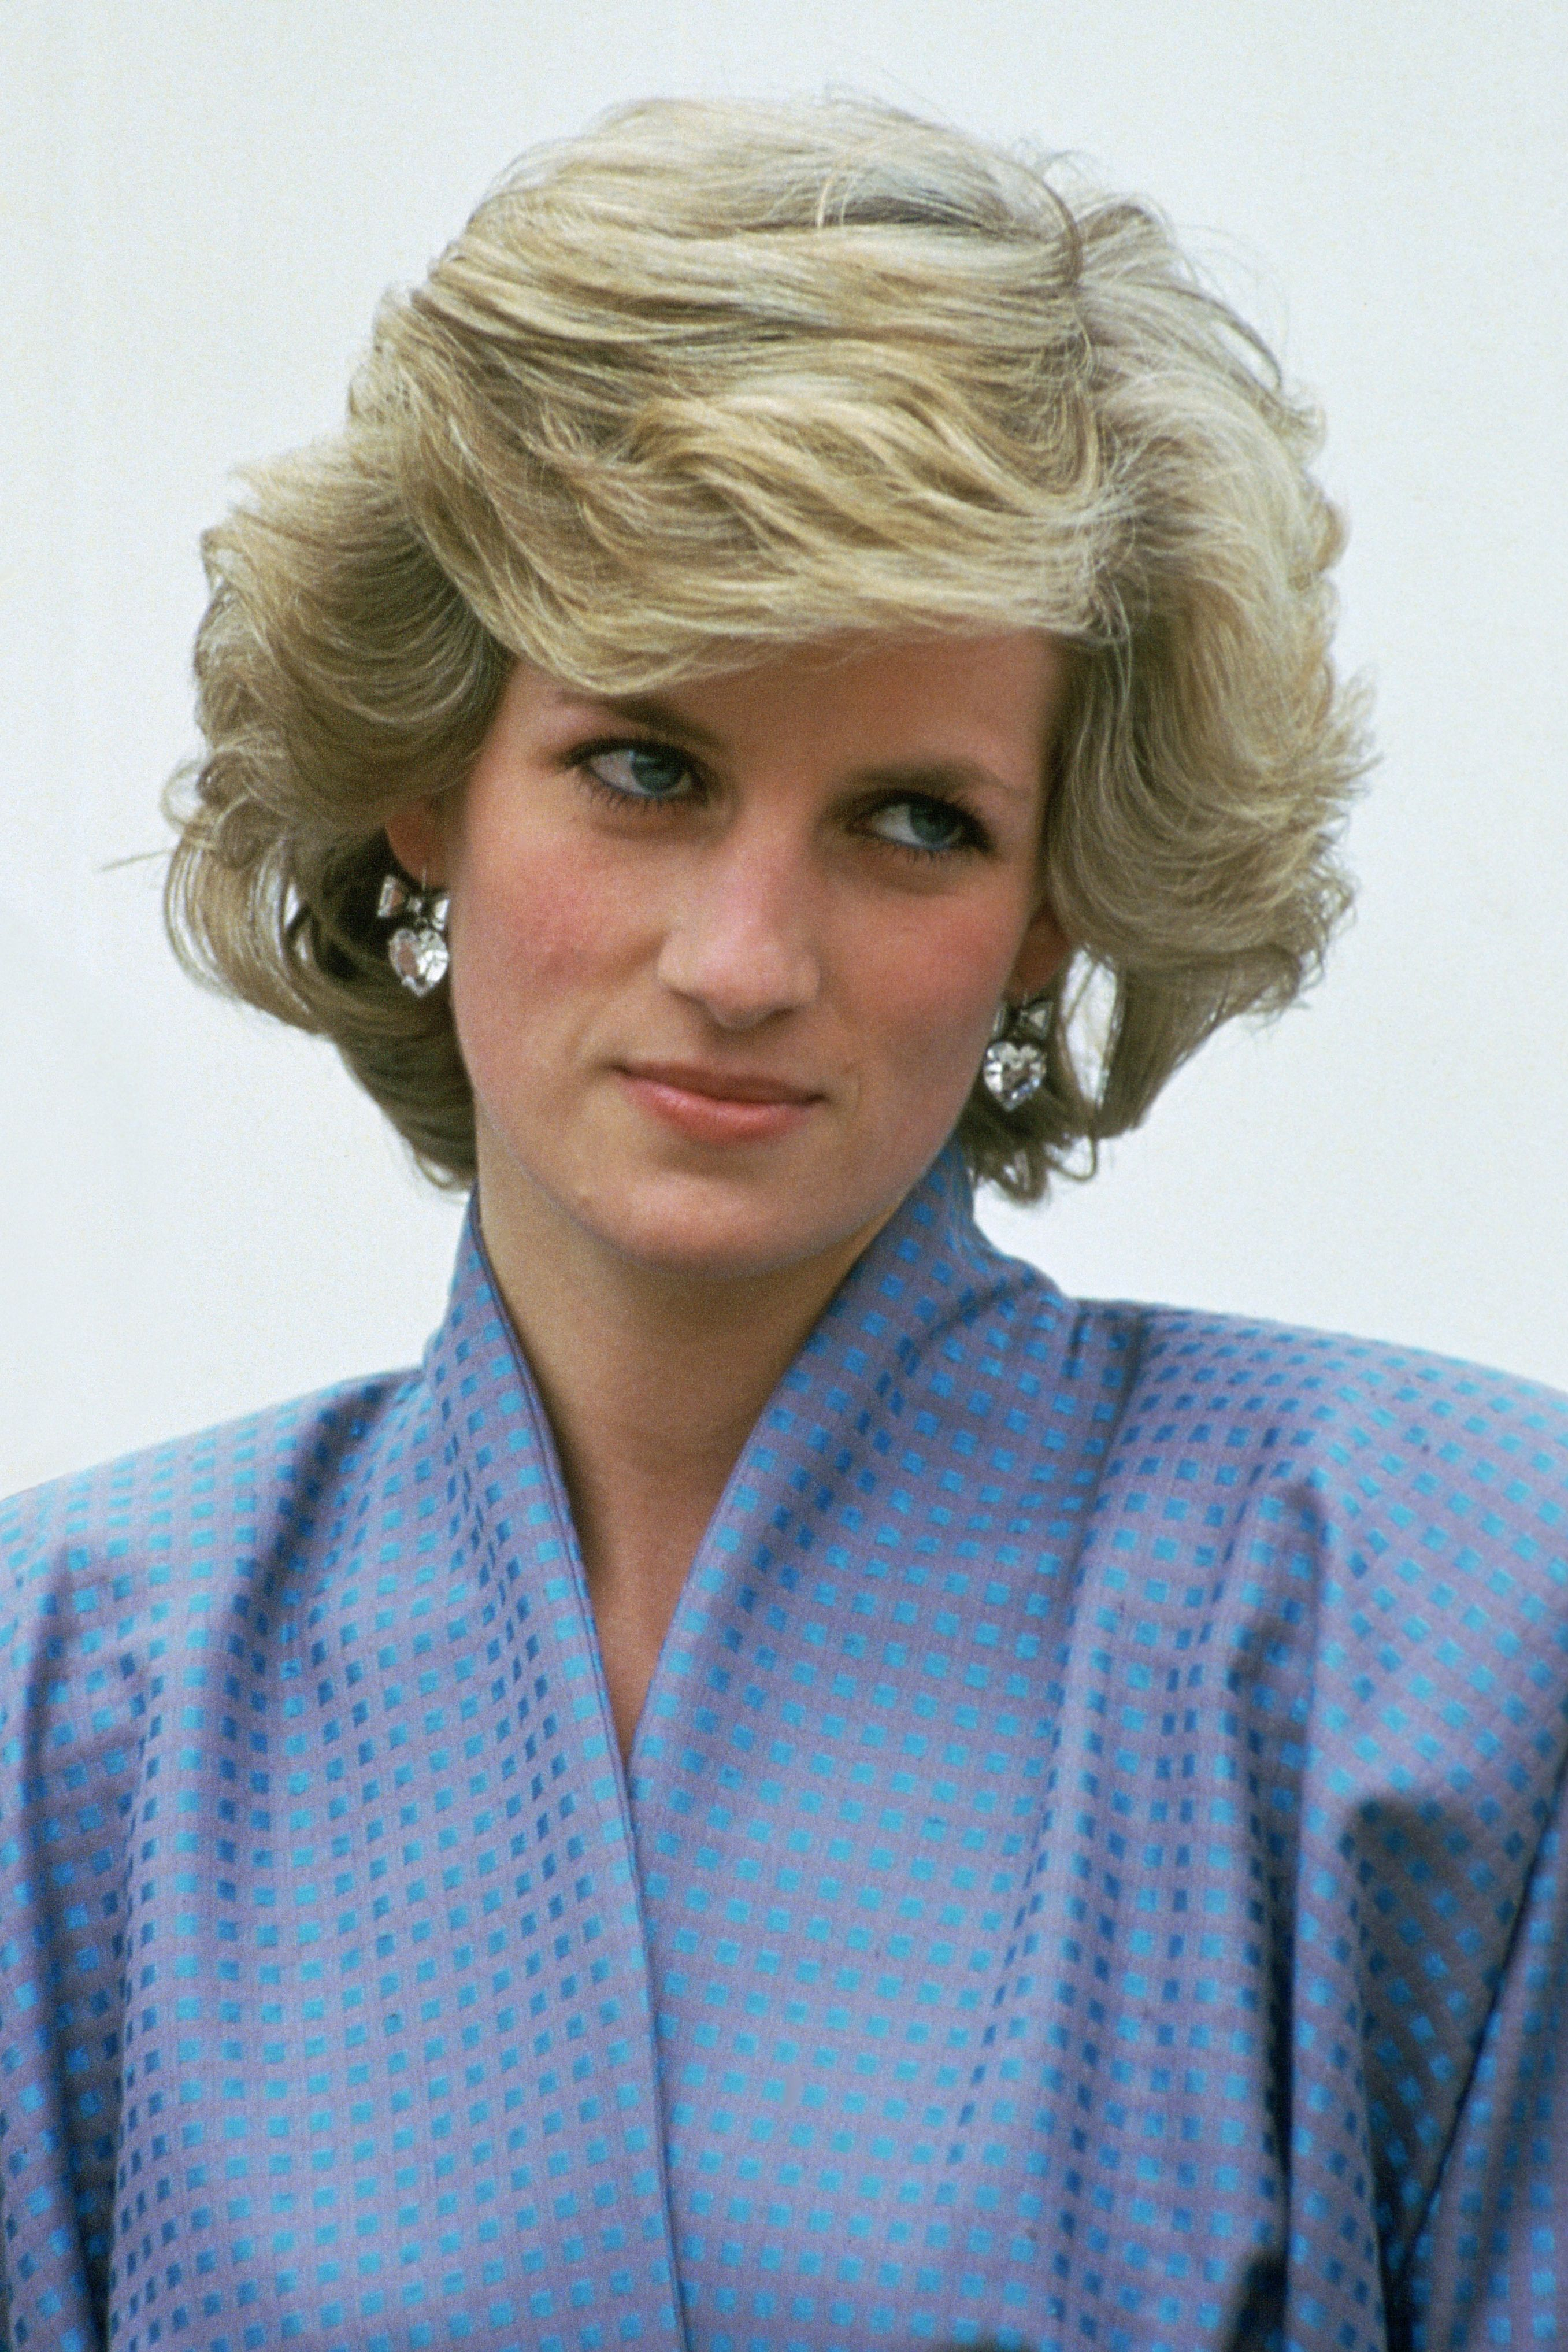 Princess Diana S Hair Though The Year Diana Princess Of Wales Style